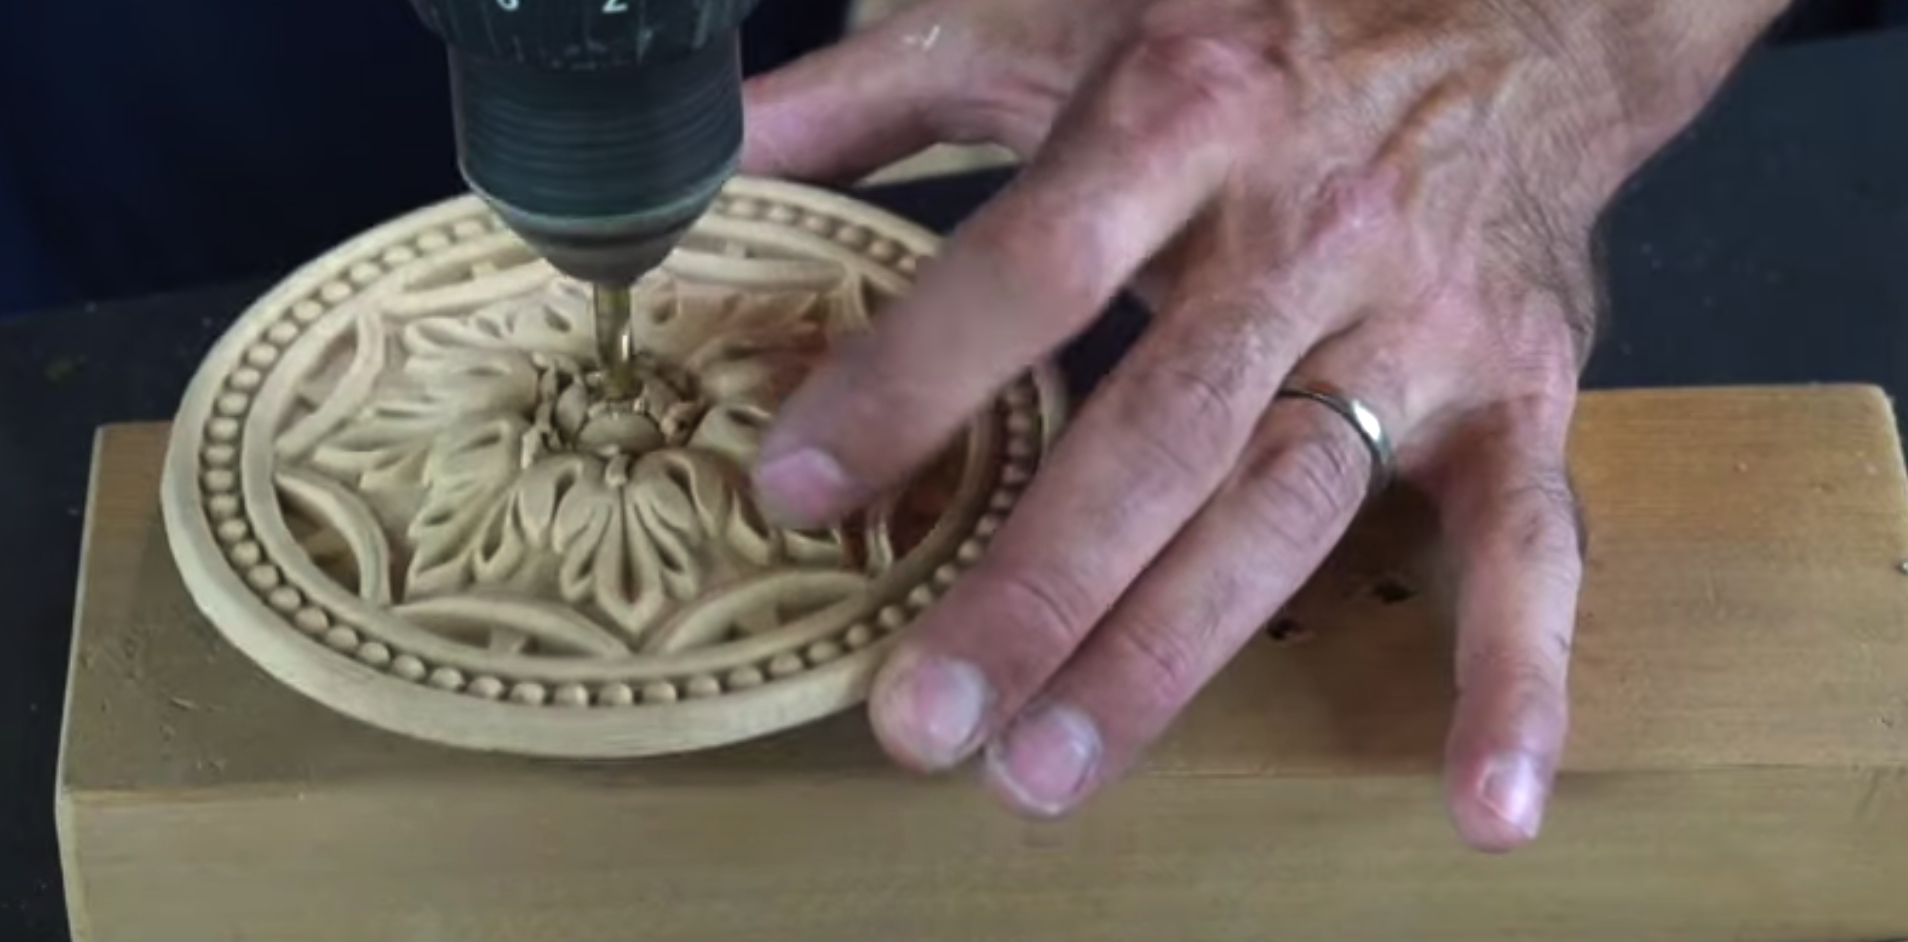 A WoodUbend moulding being drilled on a block of wood